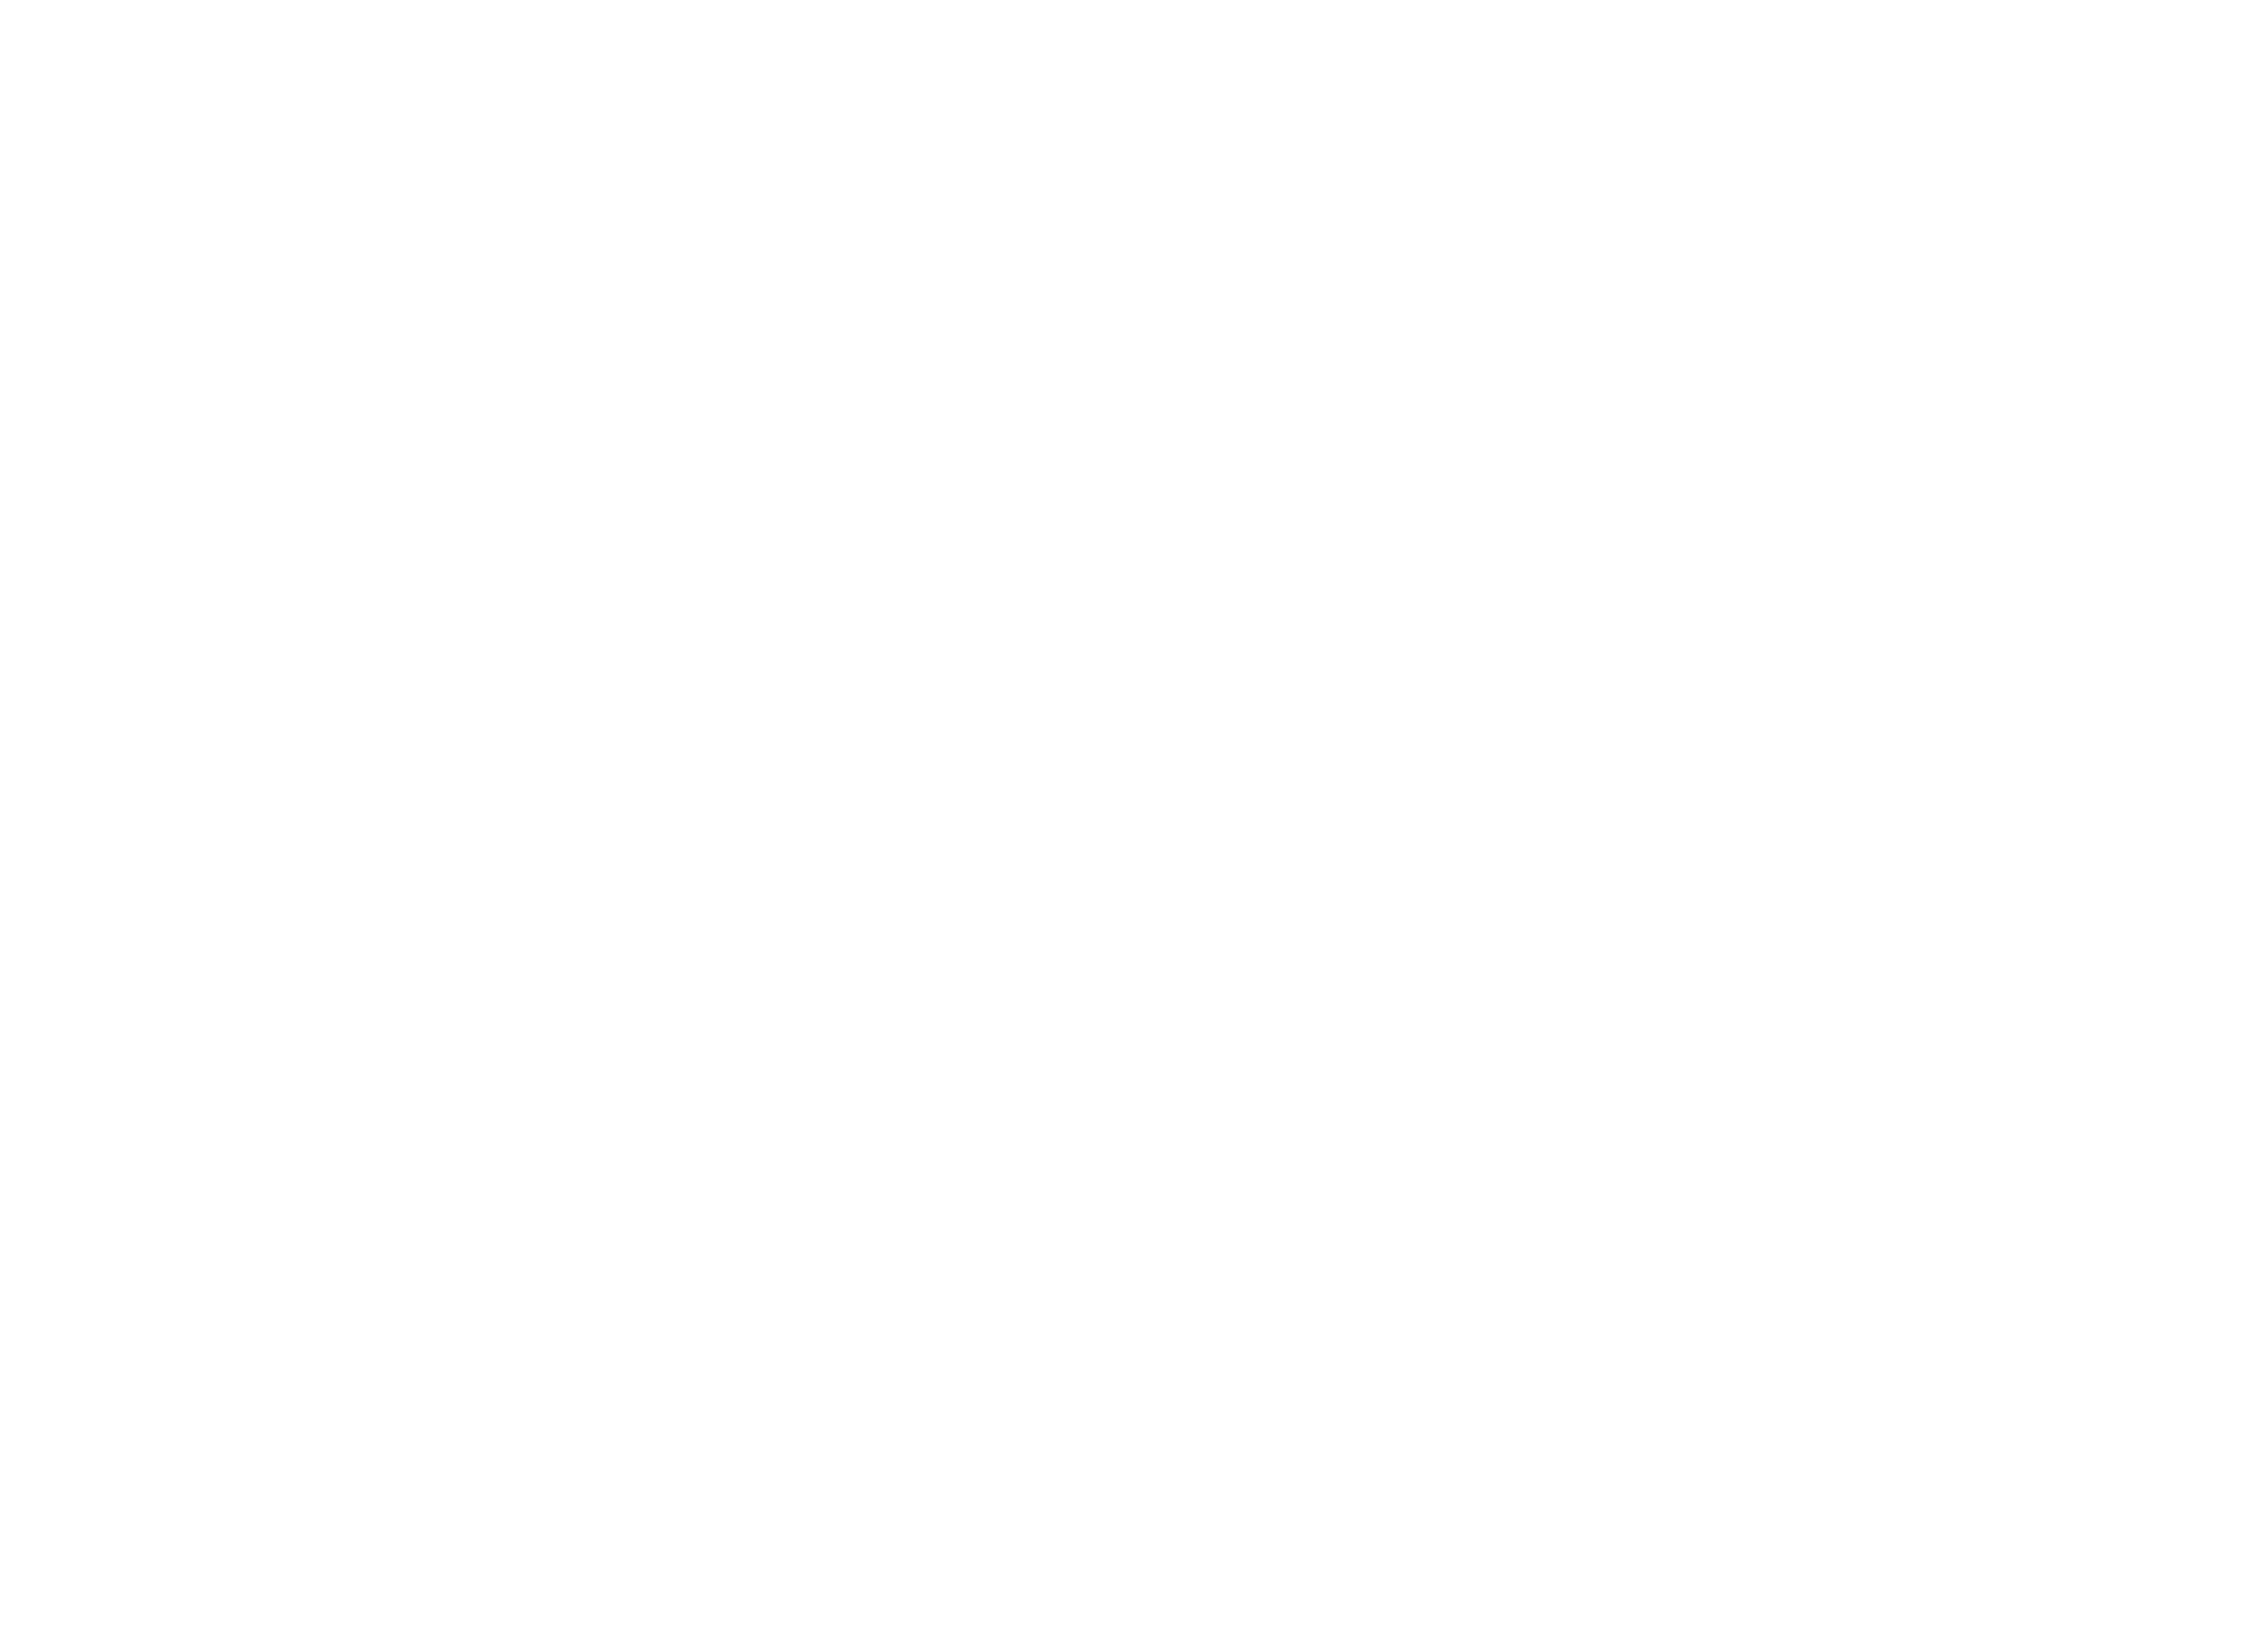 Fearless | FX Networks